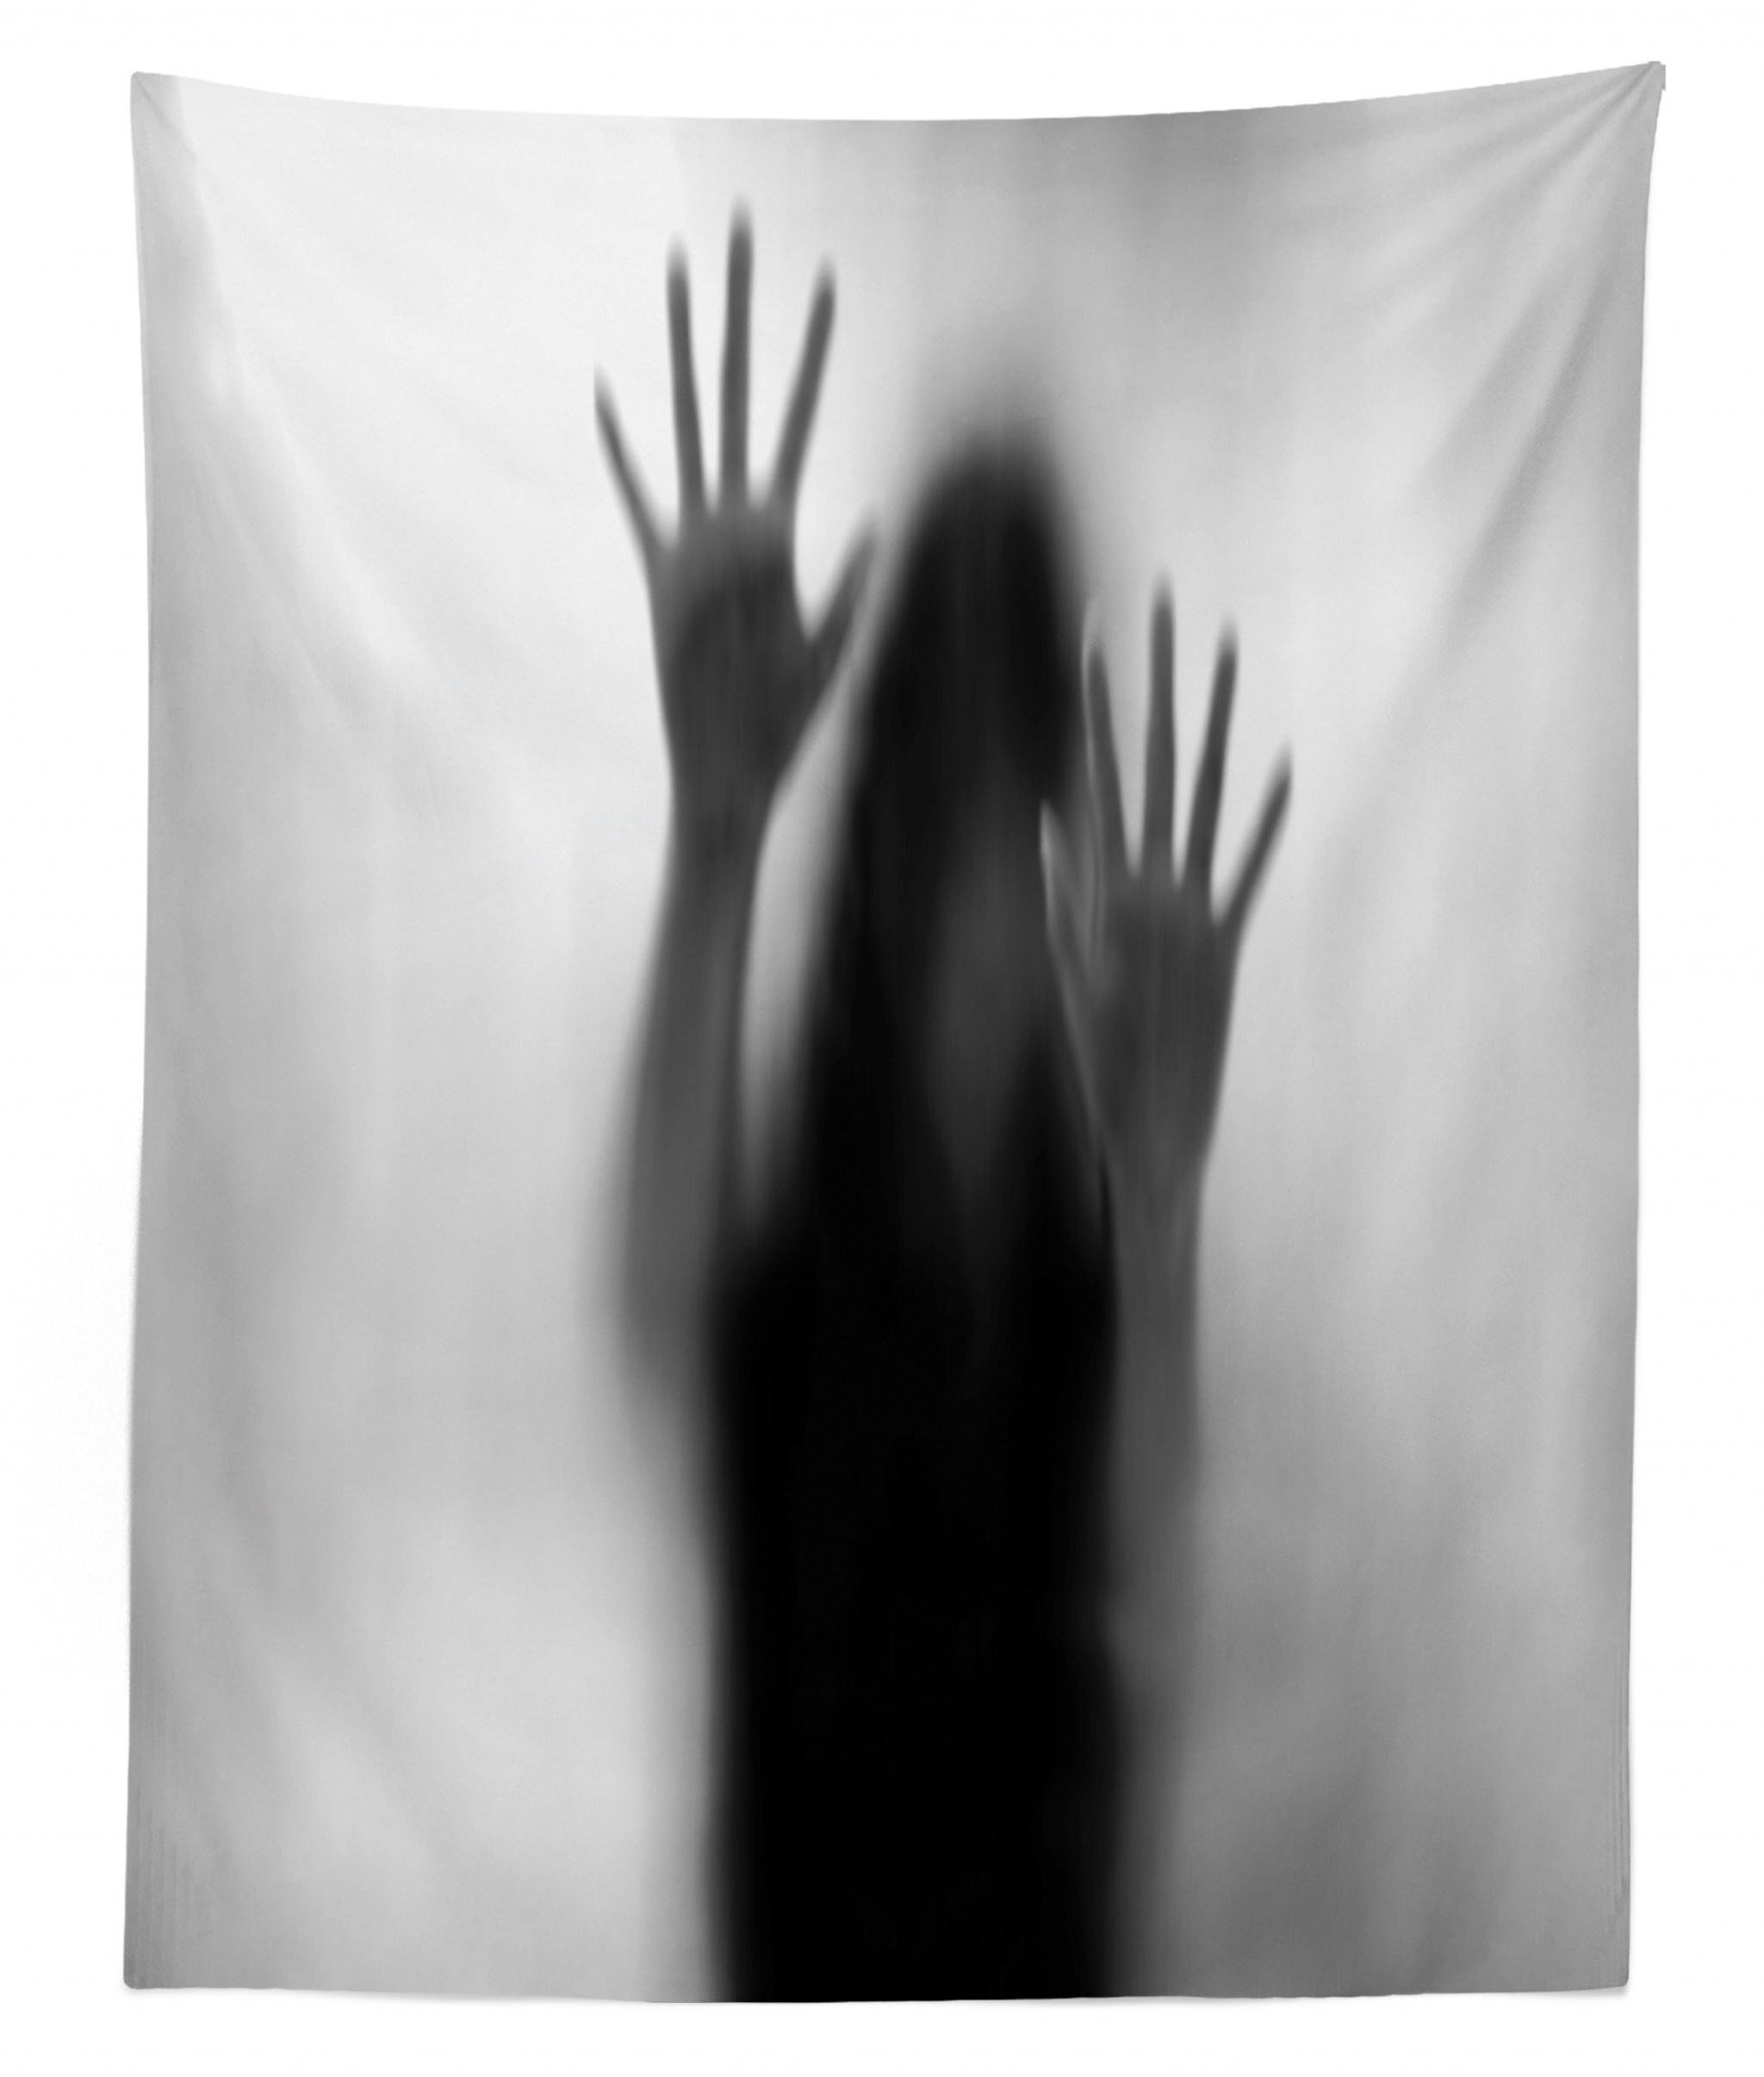 Lunarable Horror House Tapestry Twin Size, Silhouette of Woman behind the Veil Scared to Death Obscured Paranormal Photo Print, Wall Hanging Bedspread Bed Cover Wall Decor, 68 W X 88 L Inches, Gray